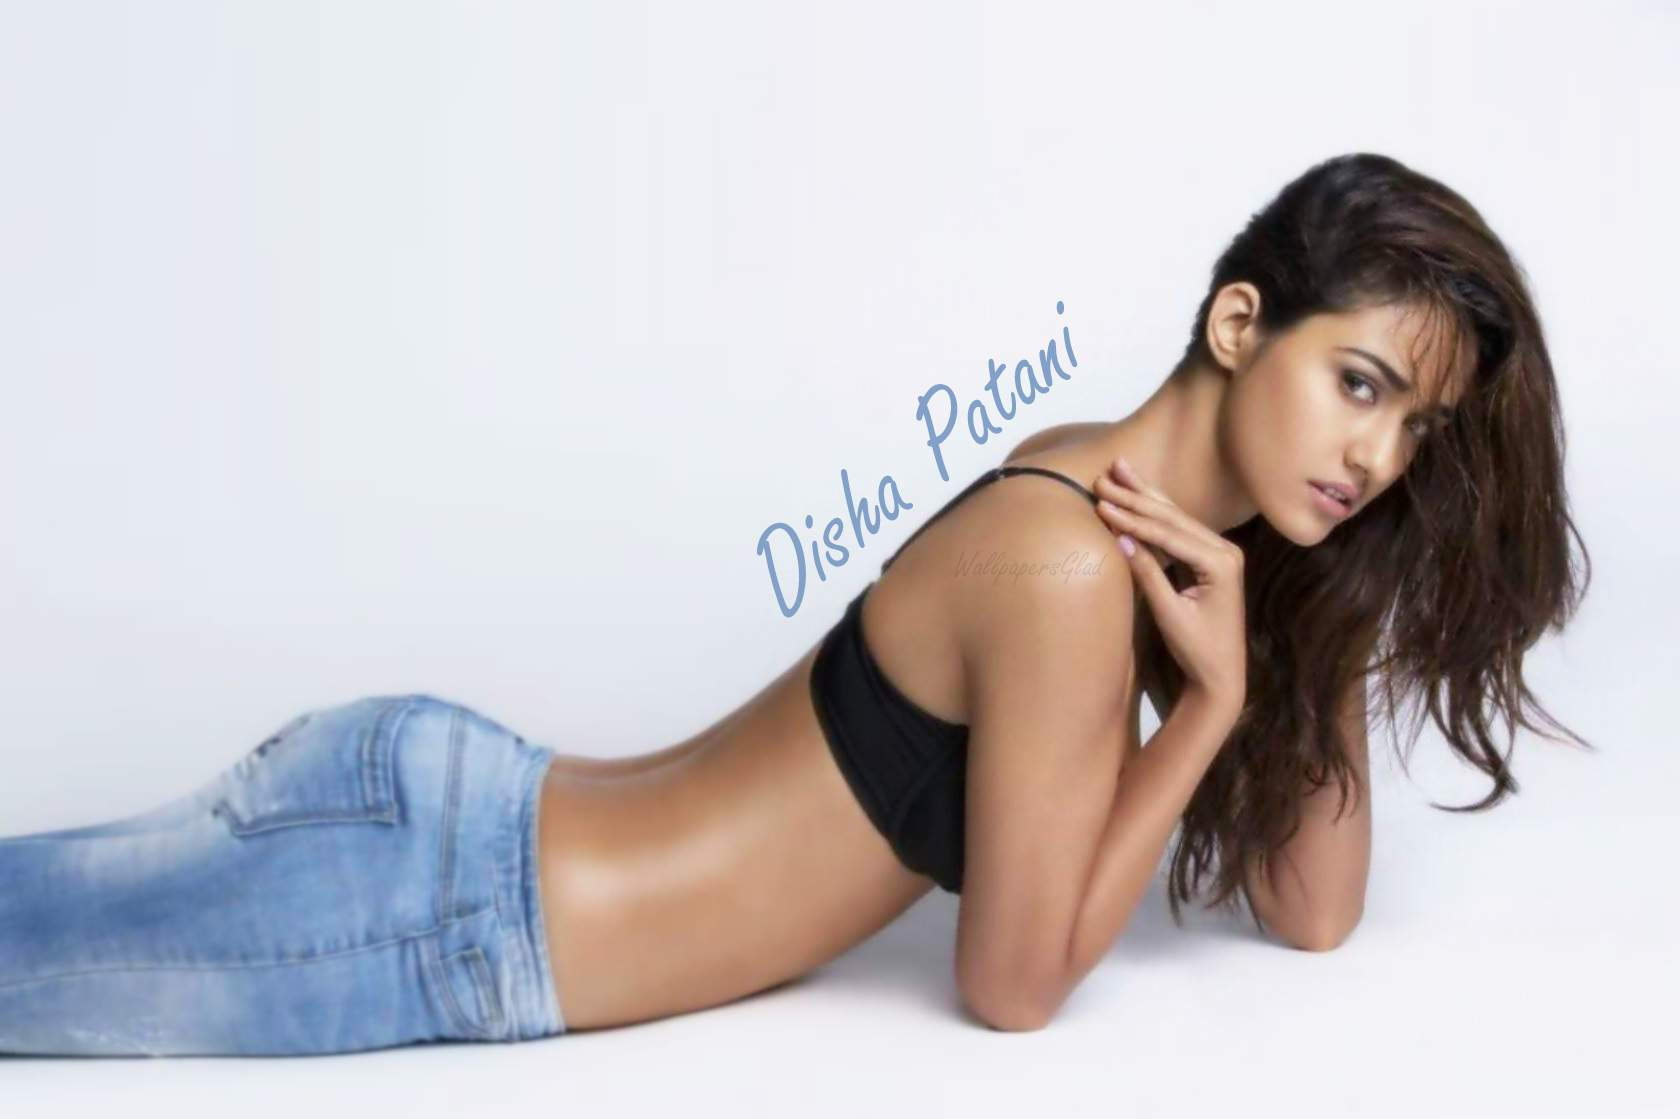 Disha Patani Hot &... Nicole Scherzinger Net Worth 2017